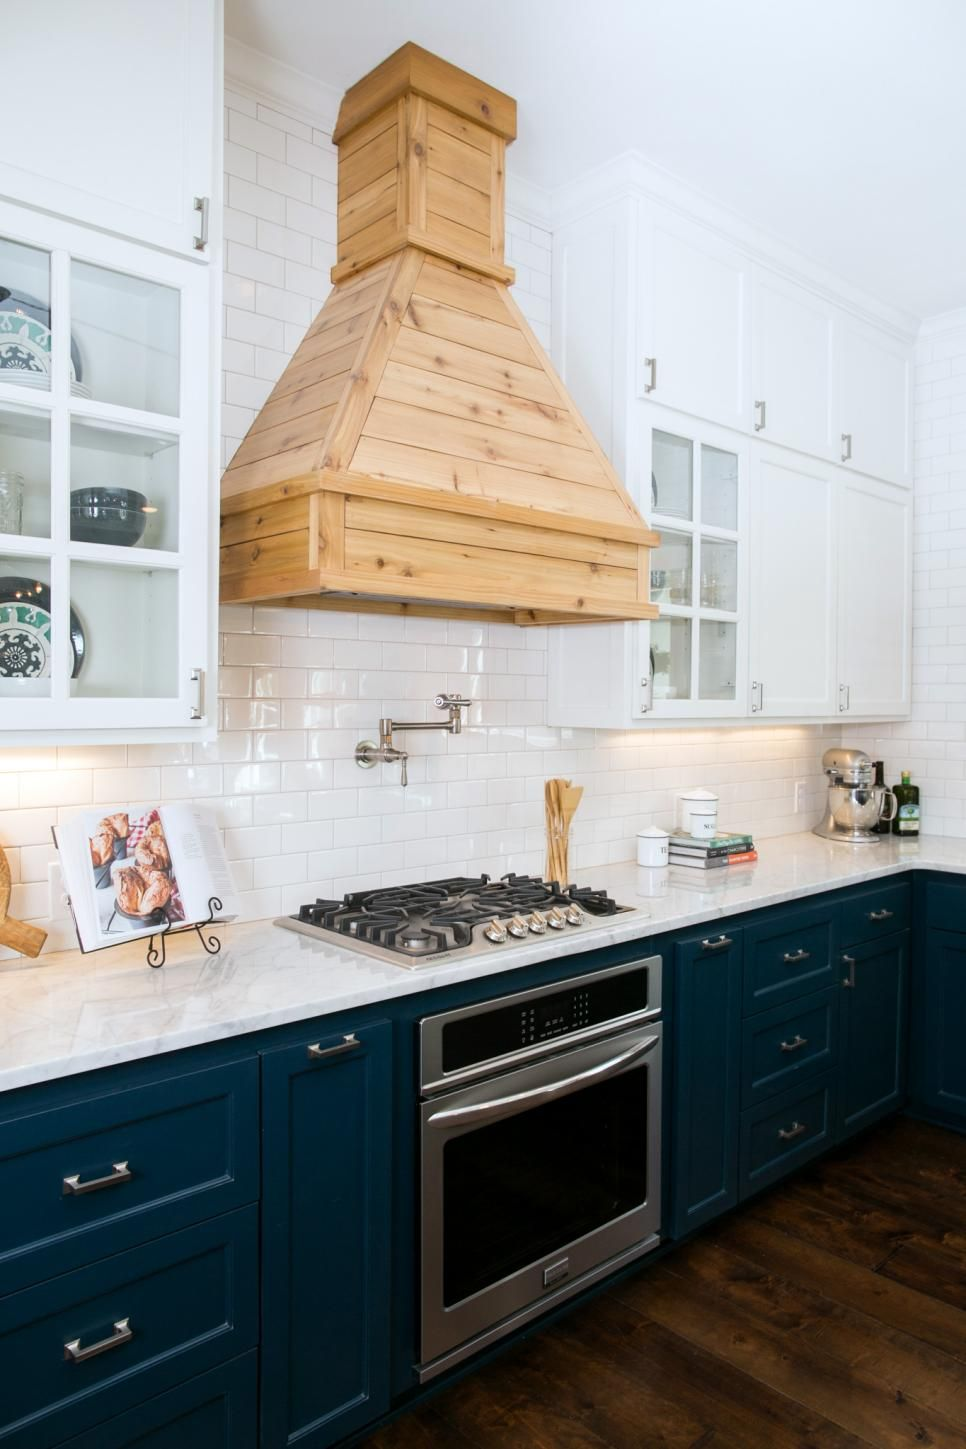 Fixer Upper Kitchen White Subway Tile Wooden Range Hood Kitchen Vent Kitchen Vent Hood Kitchen Inspirations